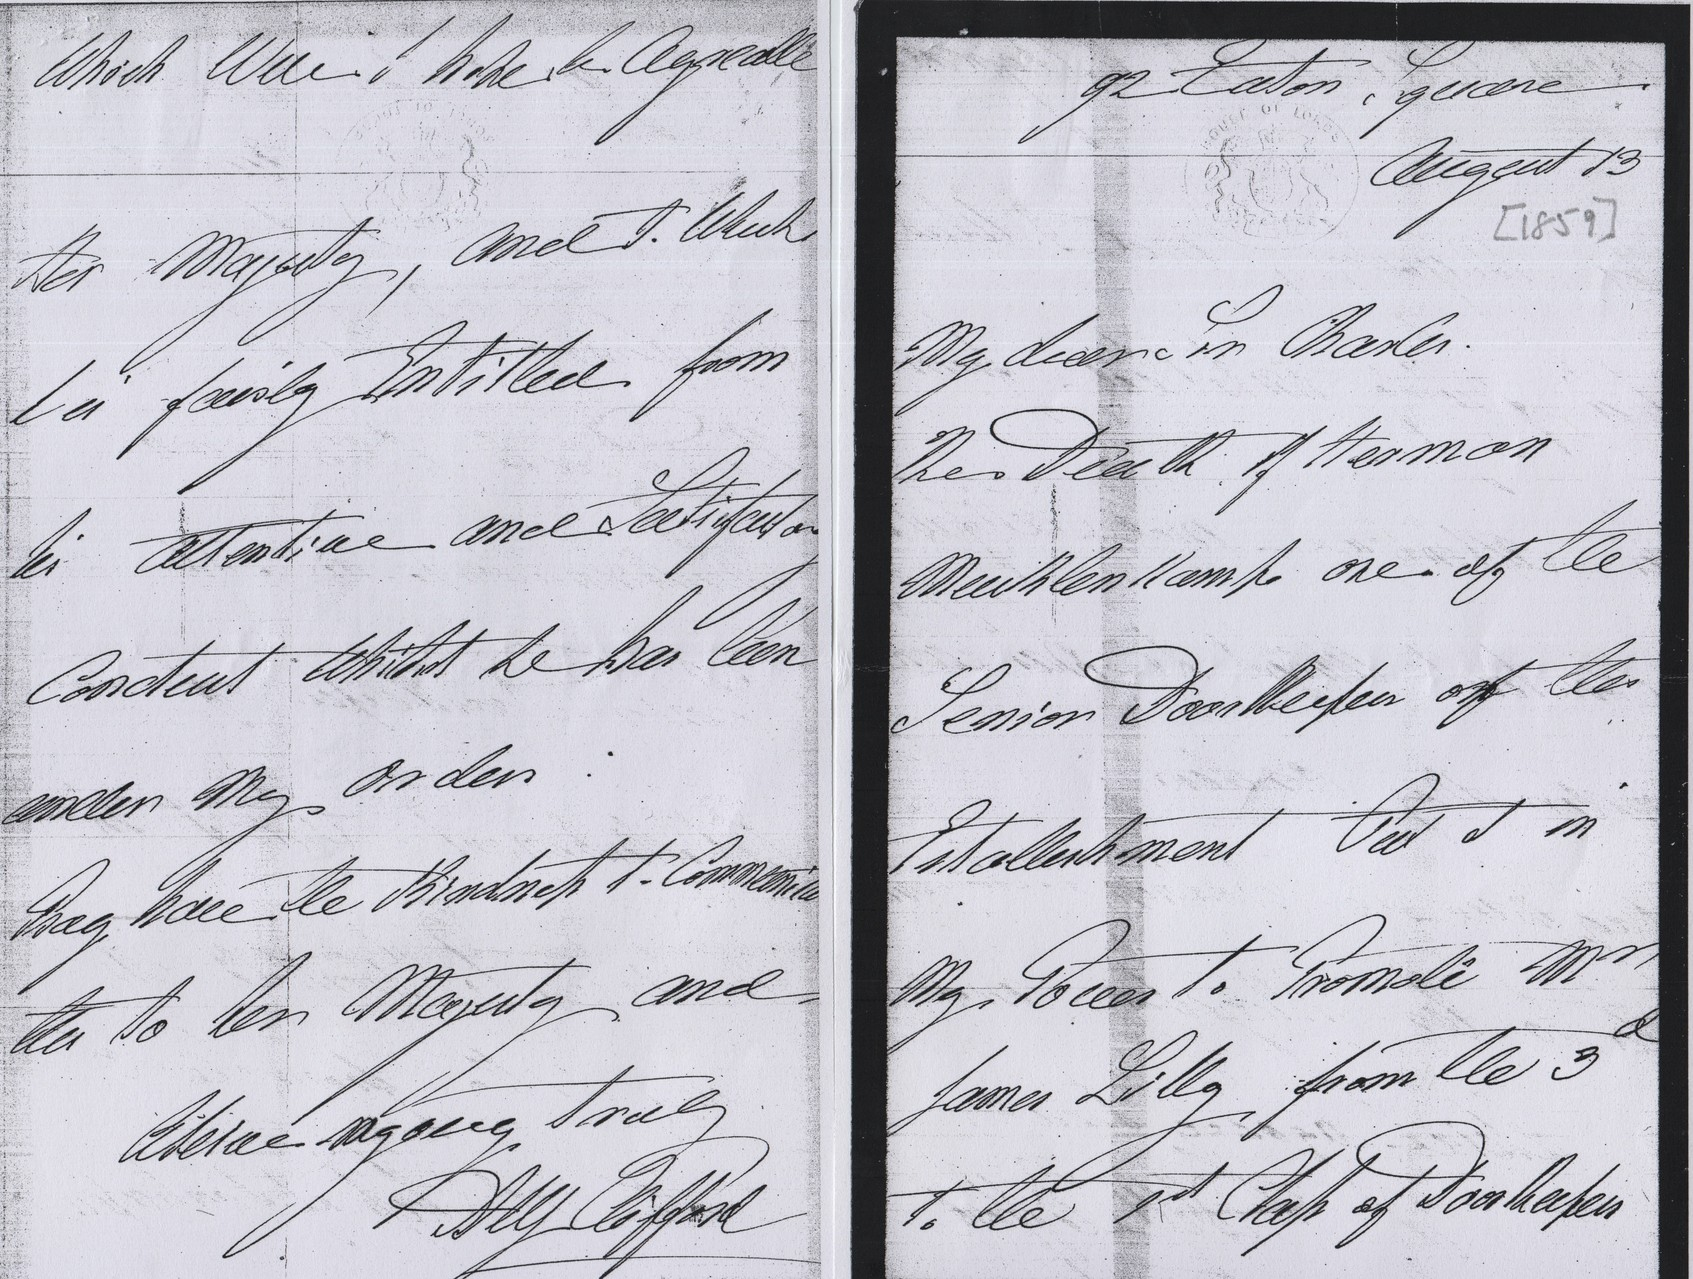 1859 letter from Lord Clifford re appointment of James Lilly